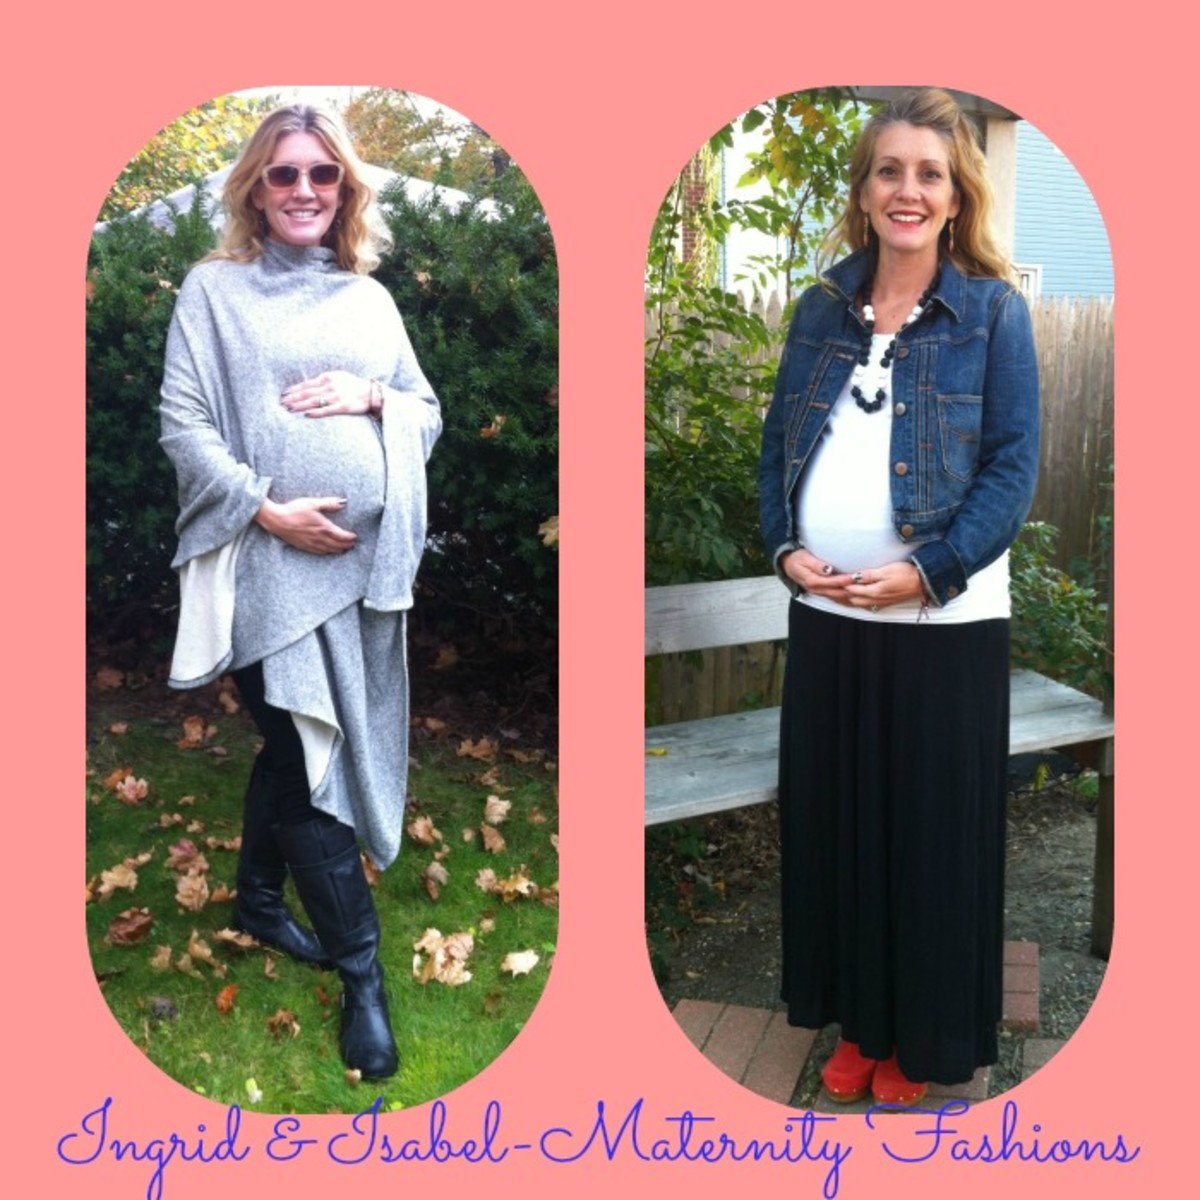 maternity fashion, ingrid &isabel, fall fashion, maternity, pregnancy